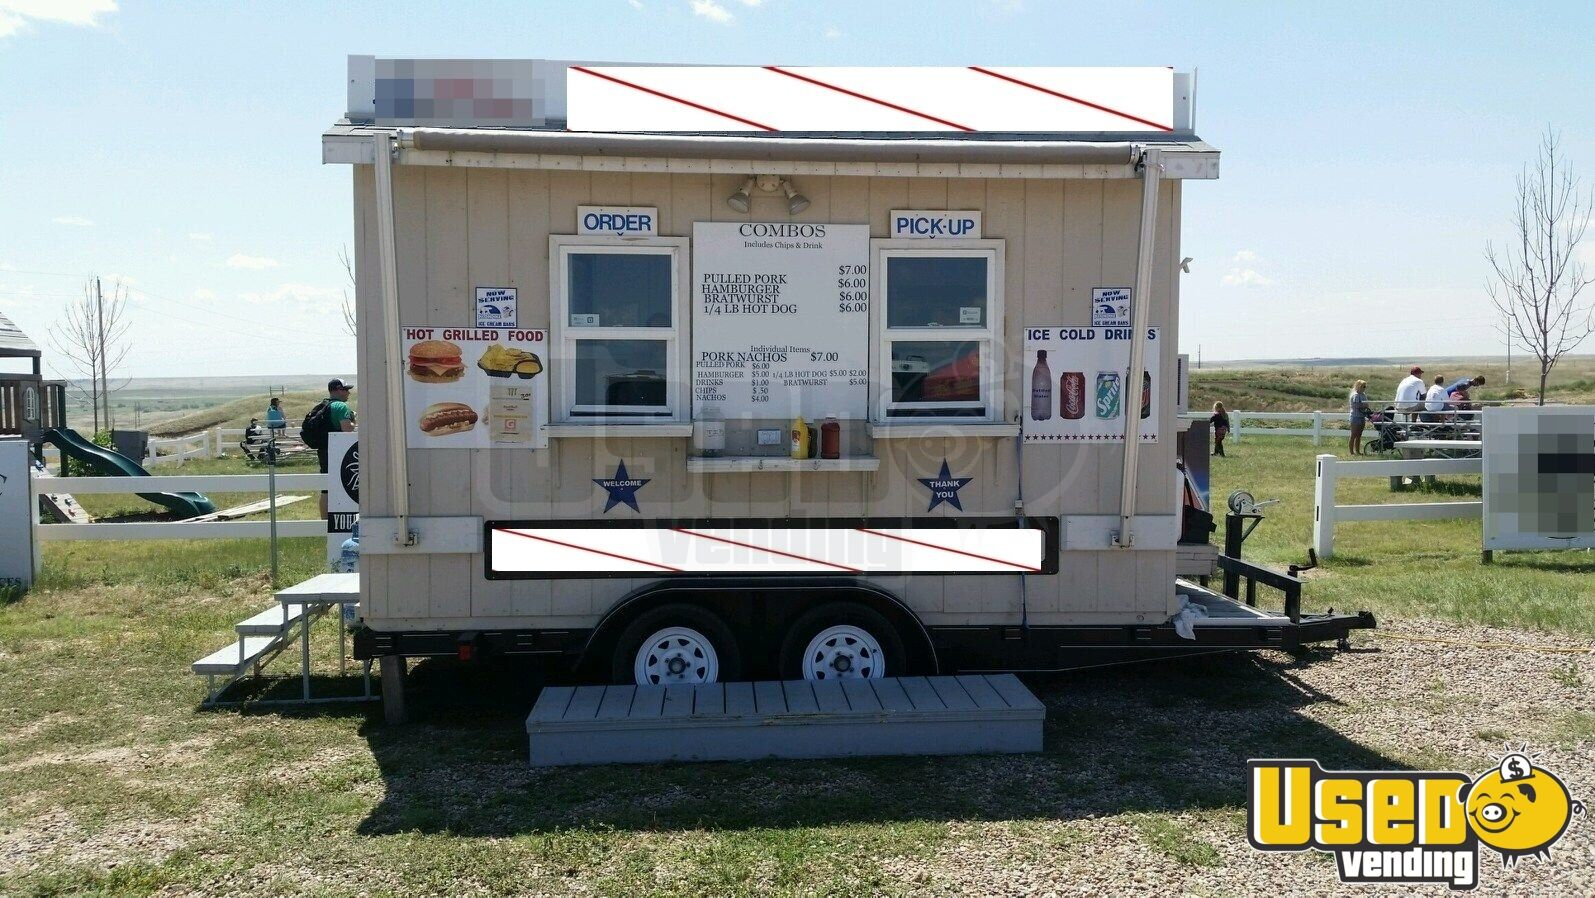 Concession trailer for sale craigslist texas - The best